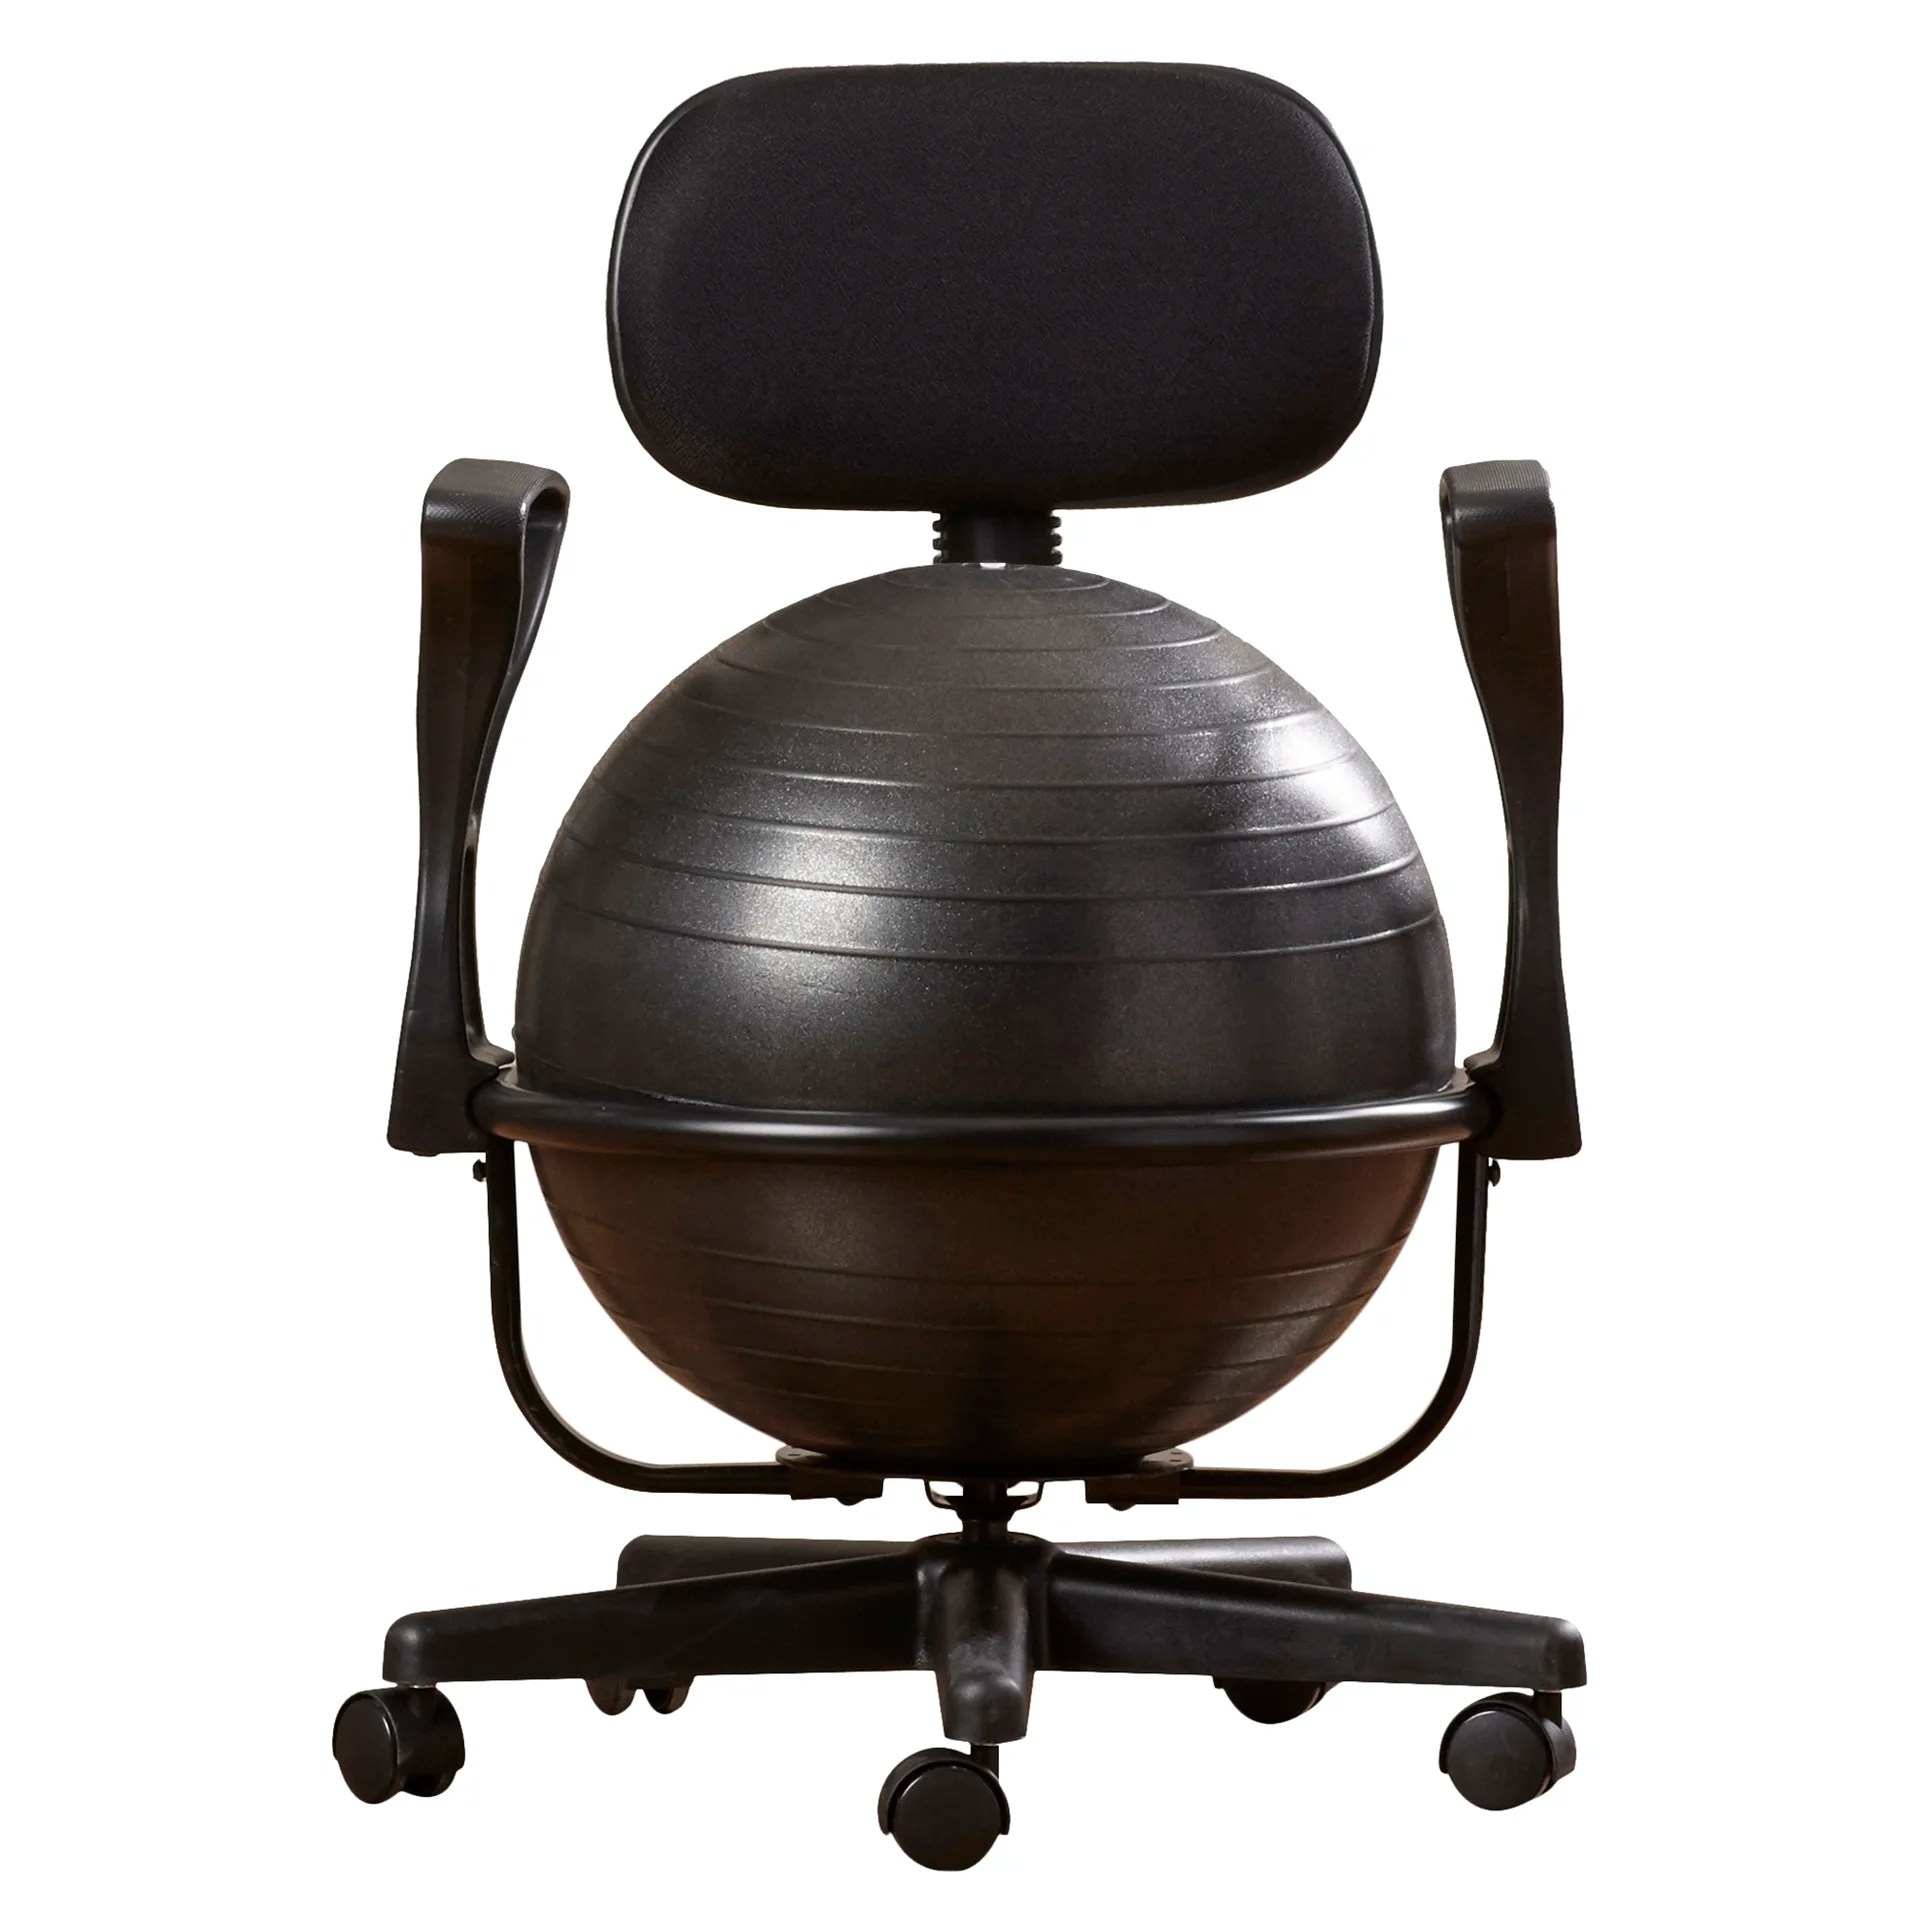 Pilates Ball Chair Symple Stuff Exercise Ball Chair And Reviews Wayfair Supply